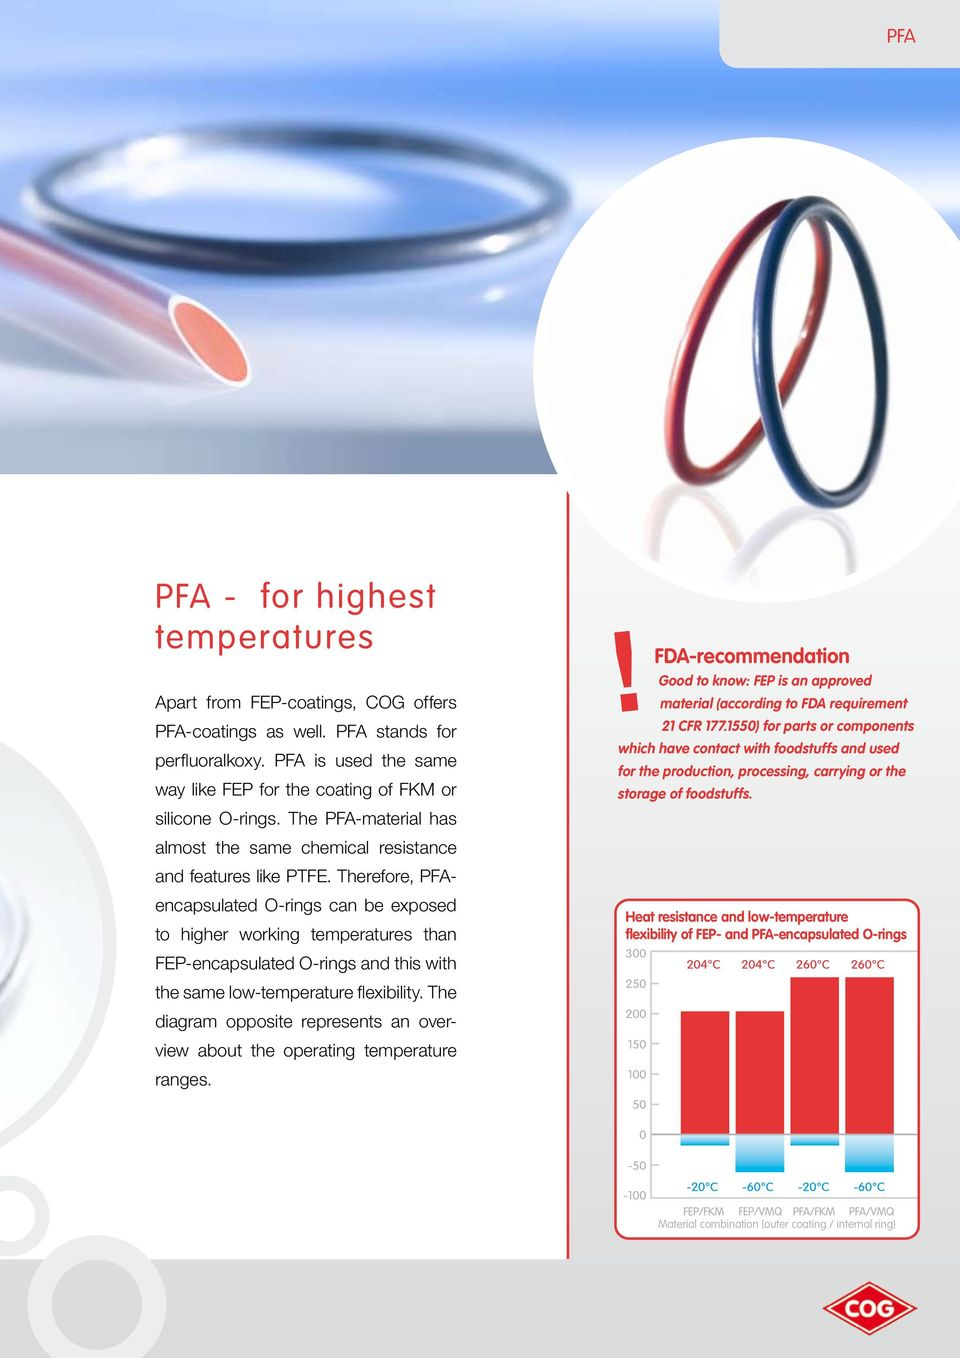 Therefore, PFAencapsulated O-rings can be exposed to higher working temperatures than FEP-encapsulated O-rings and this with the same low-temperature flexibility.